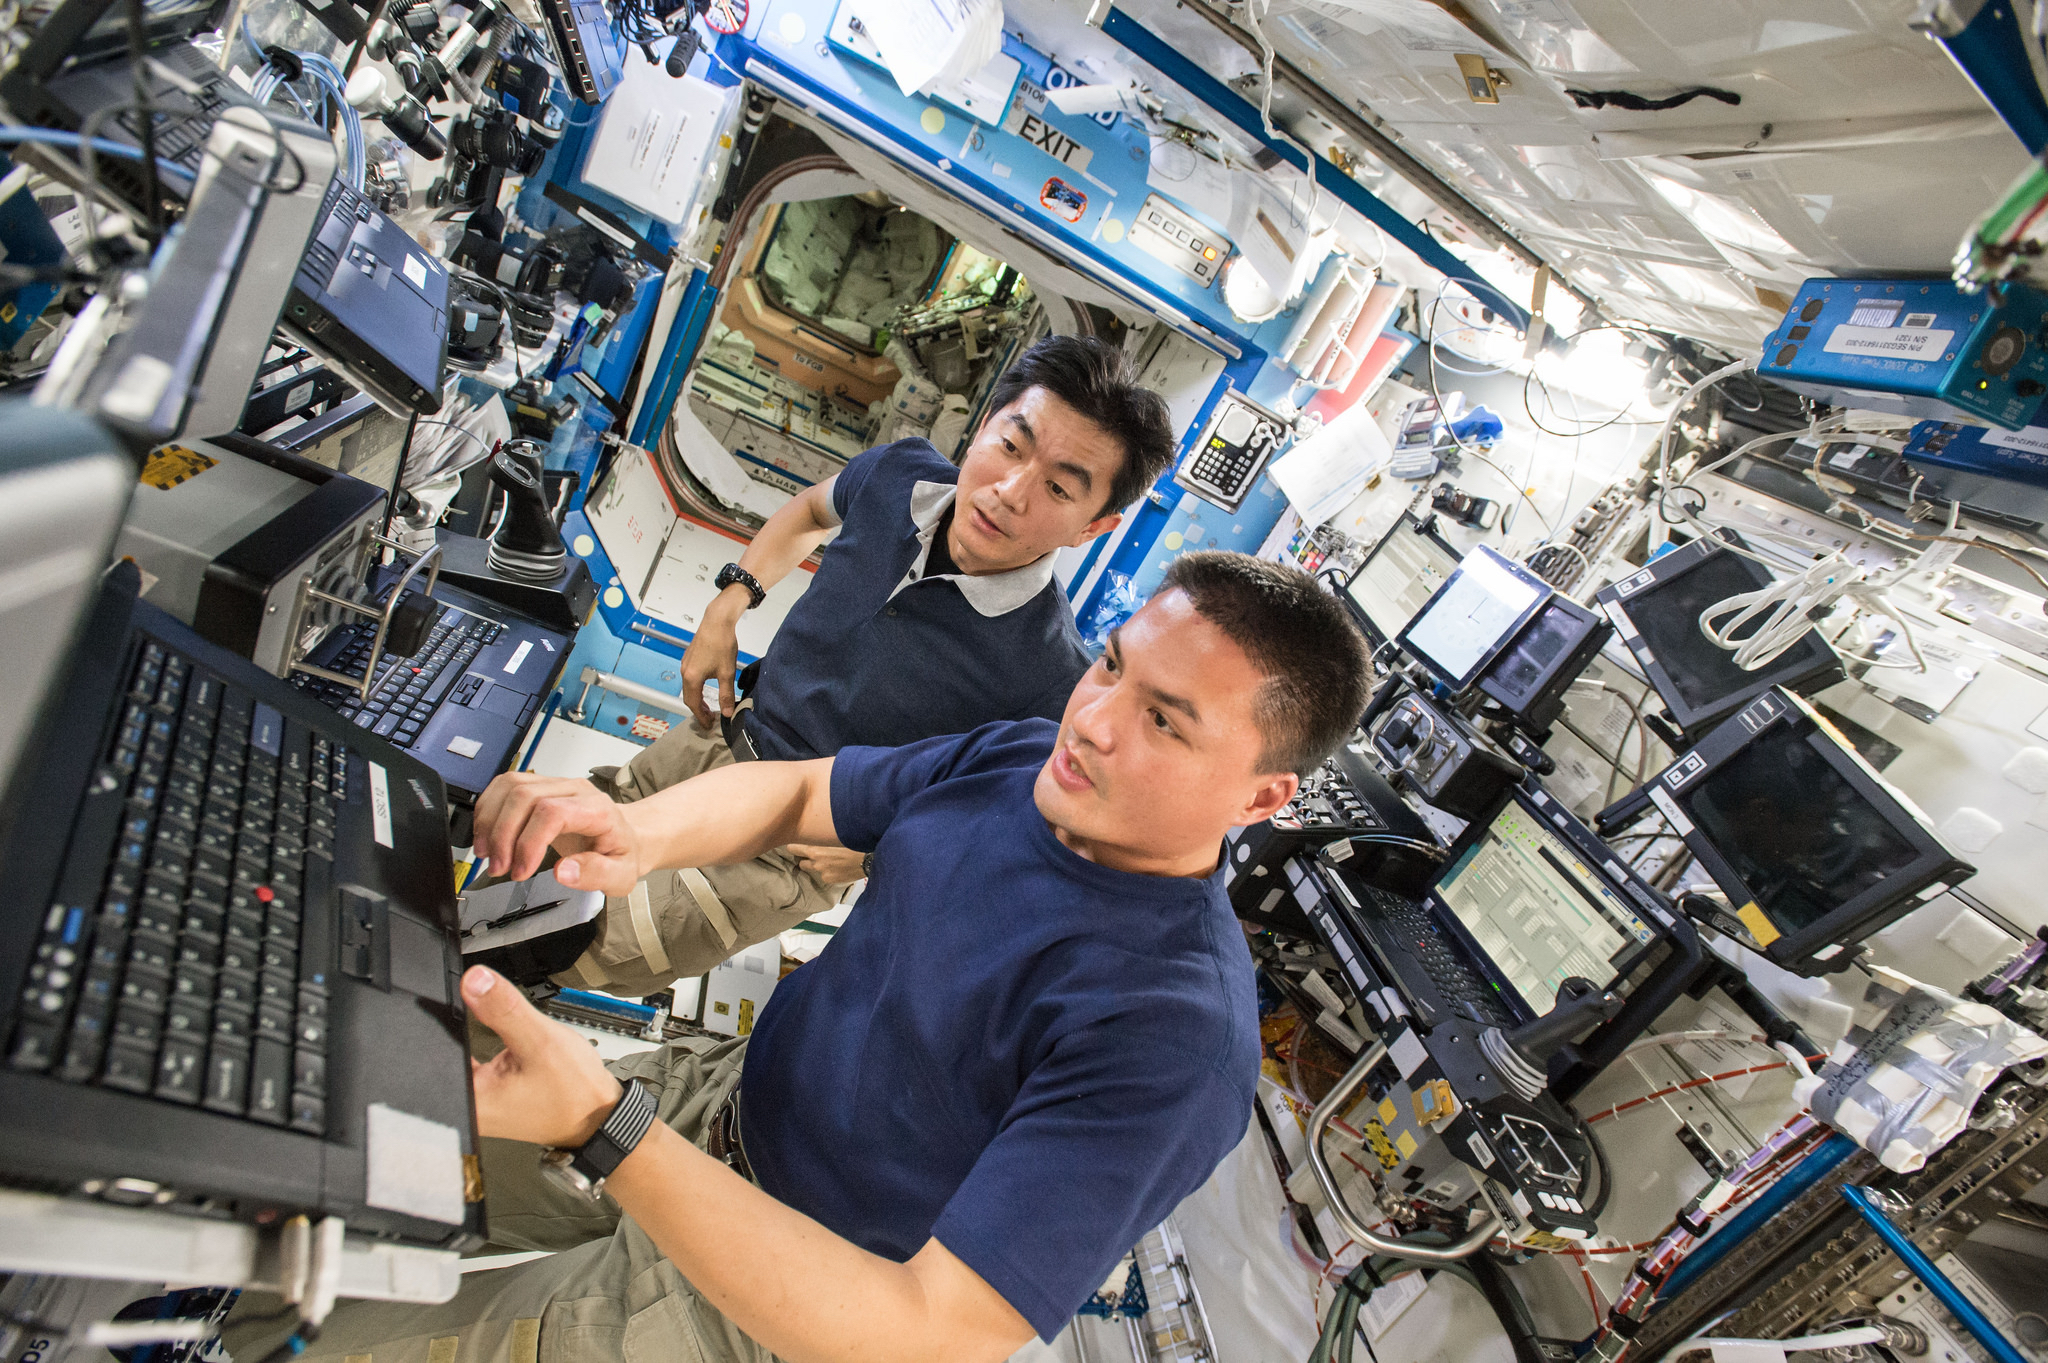 Expedition 44 Crew Lindgren and Yui